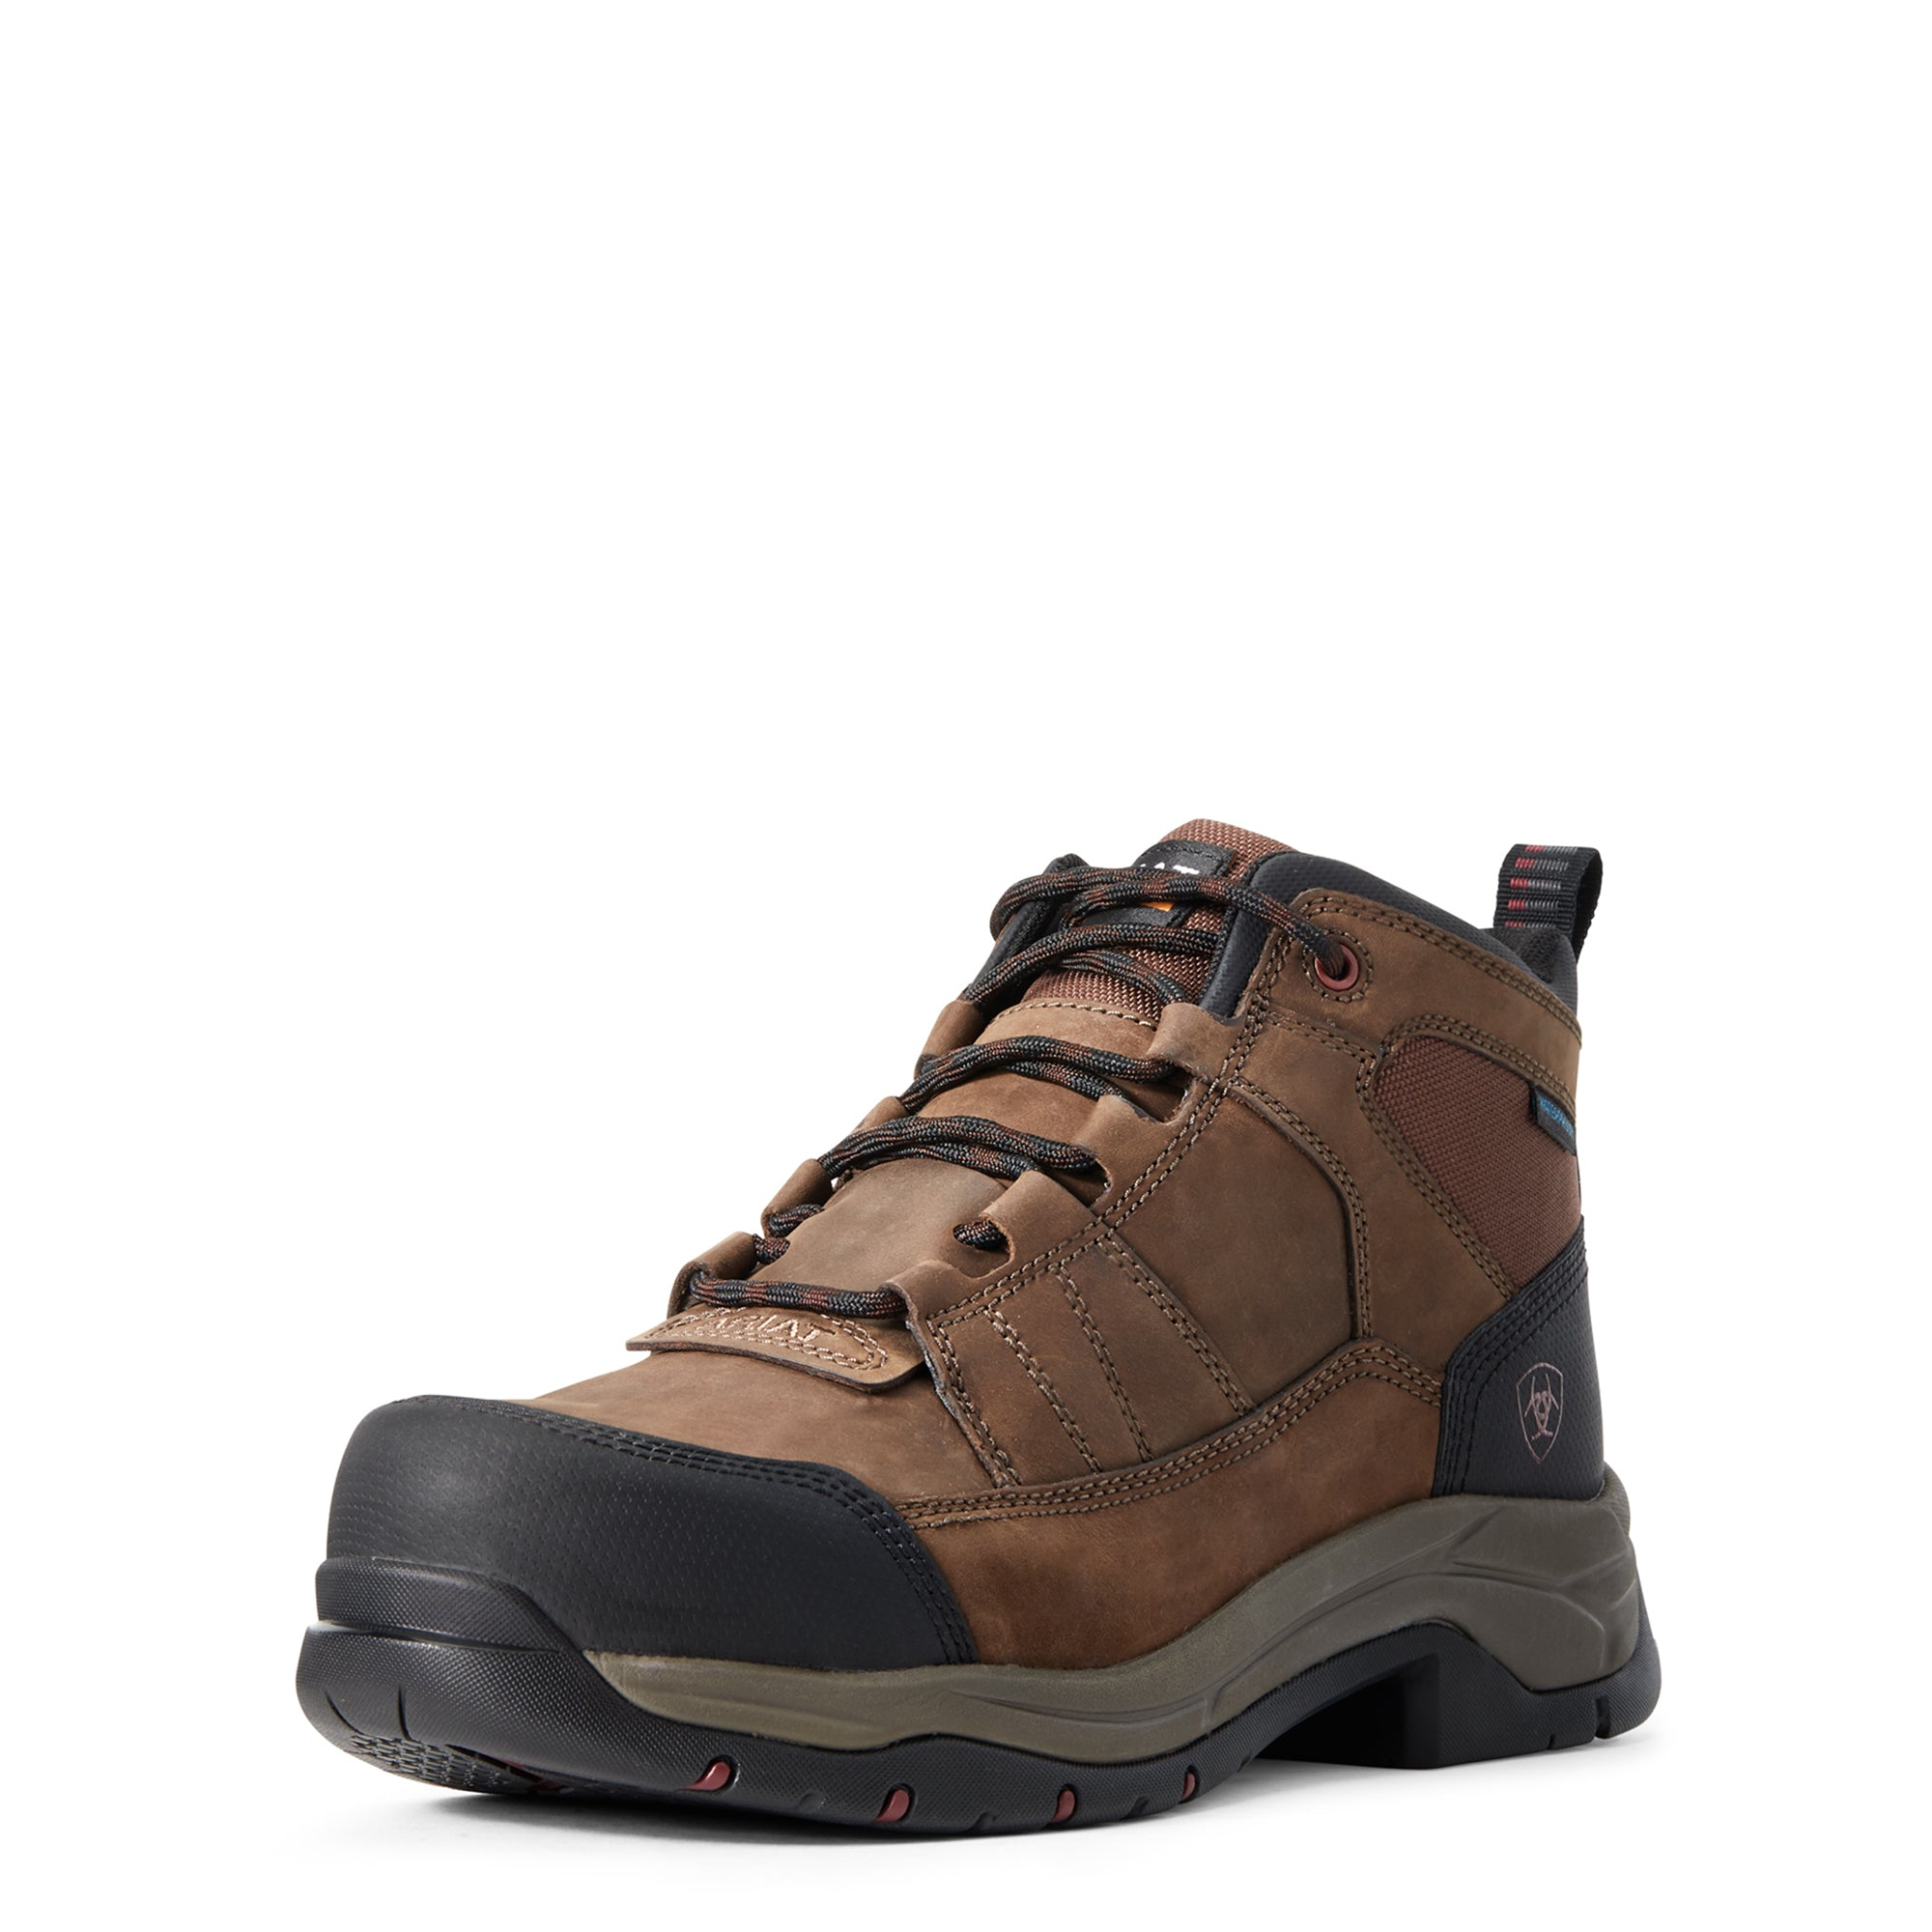 'Ariat' Men's Telluride Work Comp Toe / WP - Brown